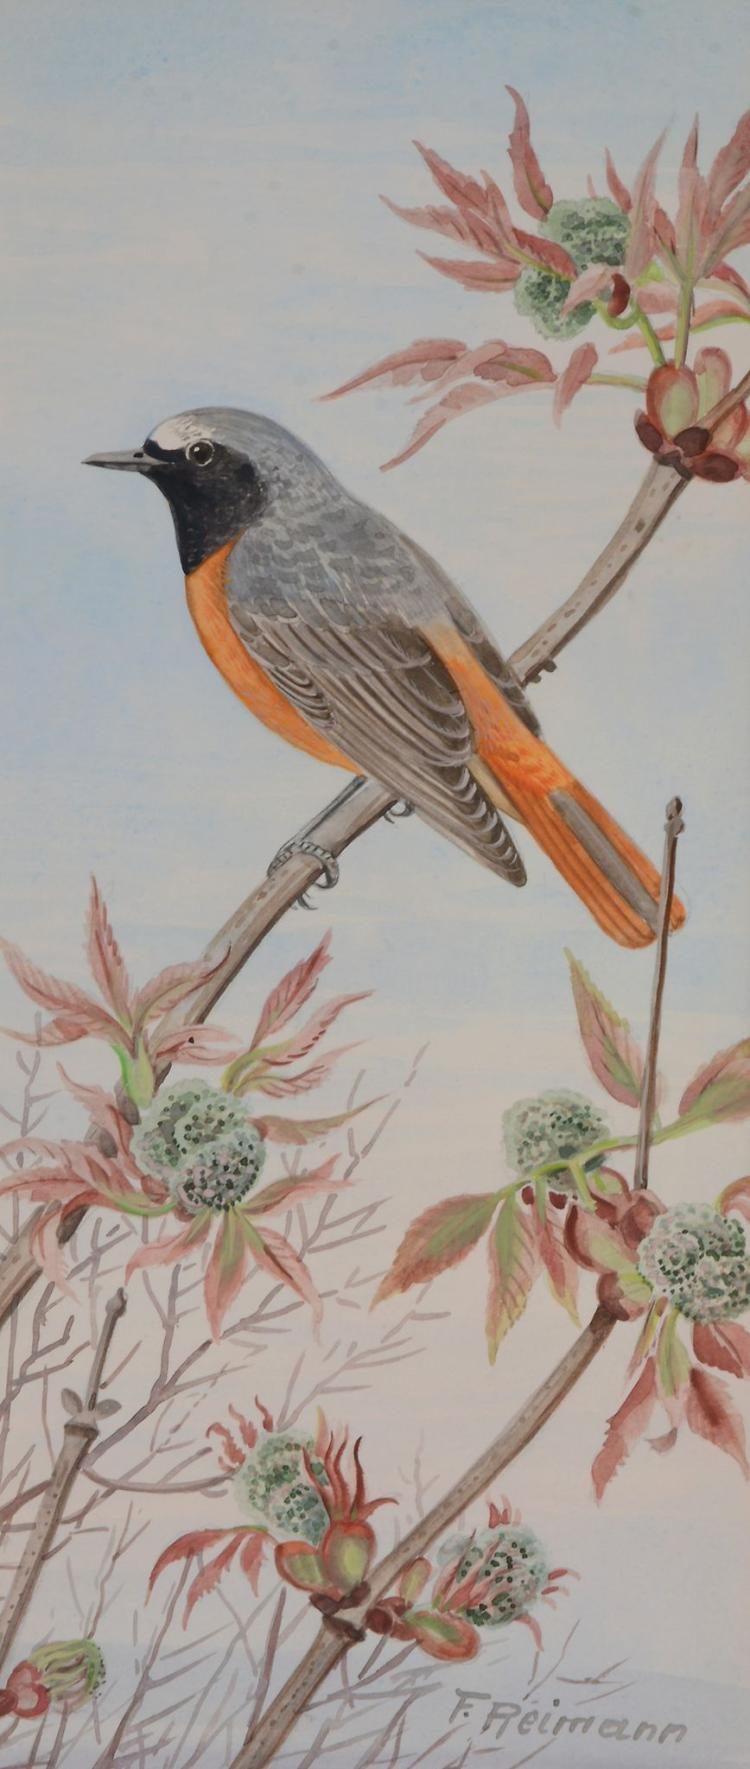 Friedrich Reimann (1896 - 1991) - Field Sparrows; Garden Redstarts; kingfisher; Kestrel; a bird of prey; an exotic bird